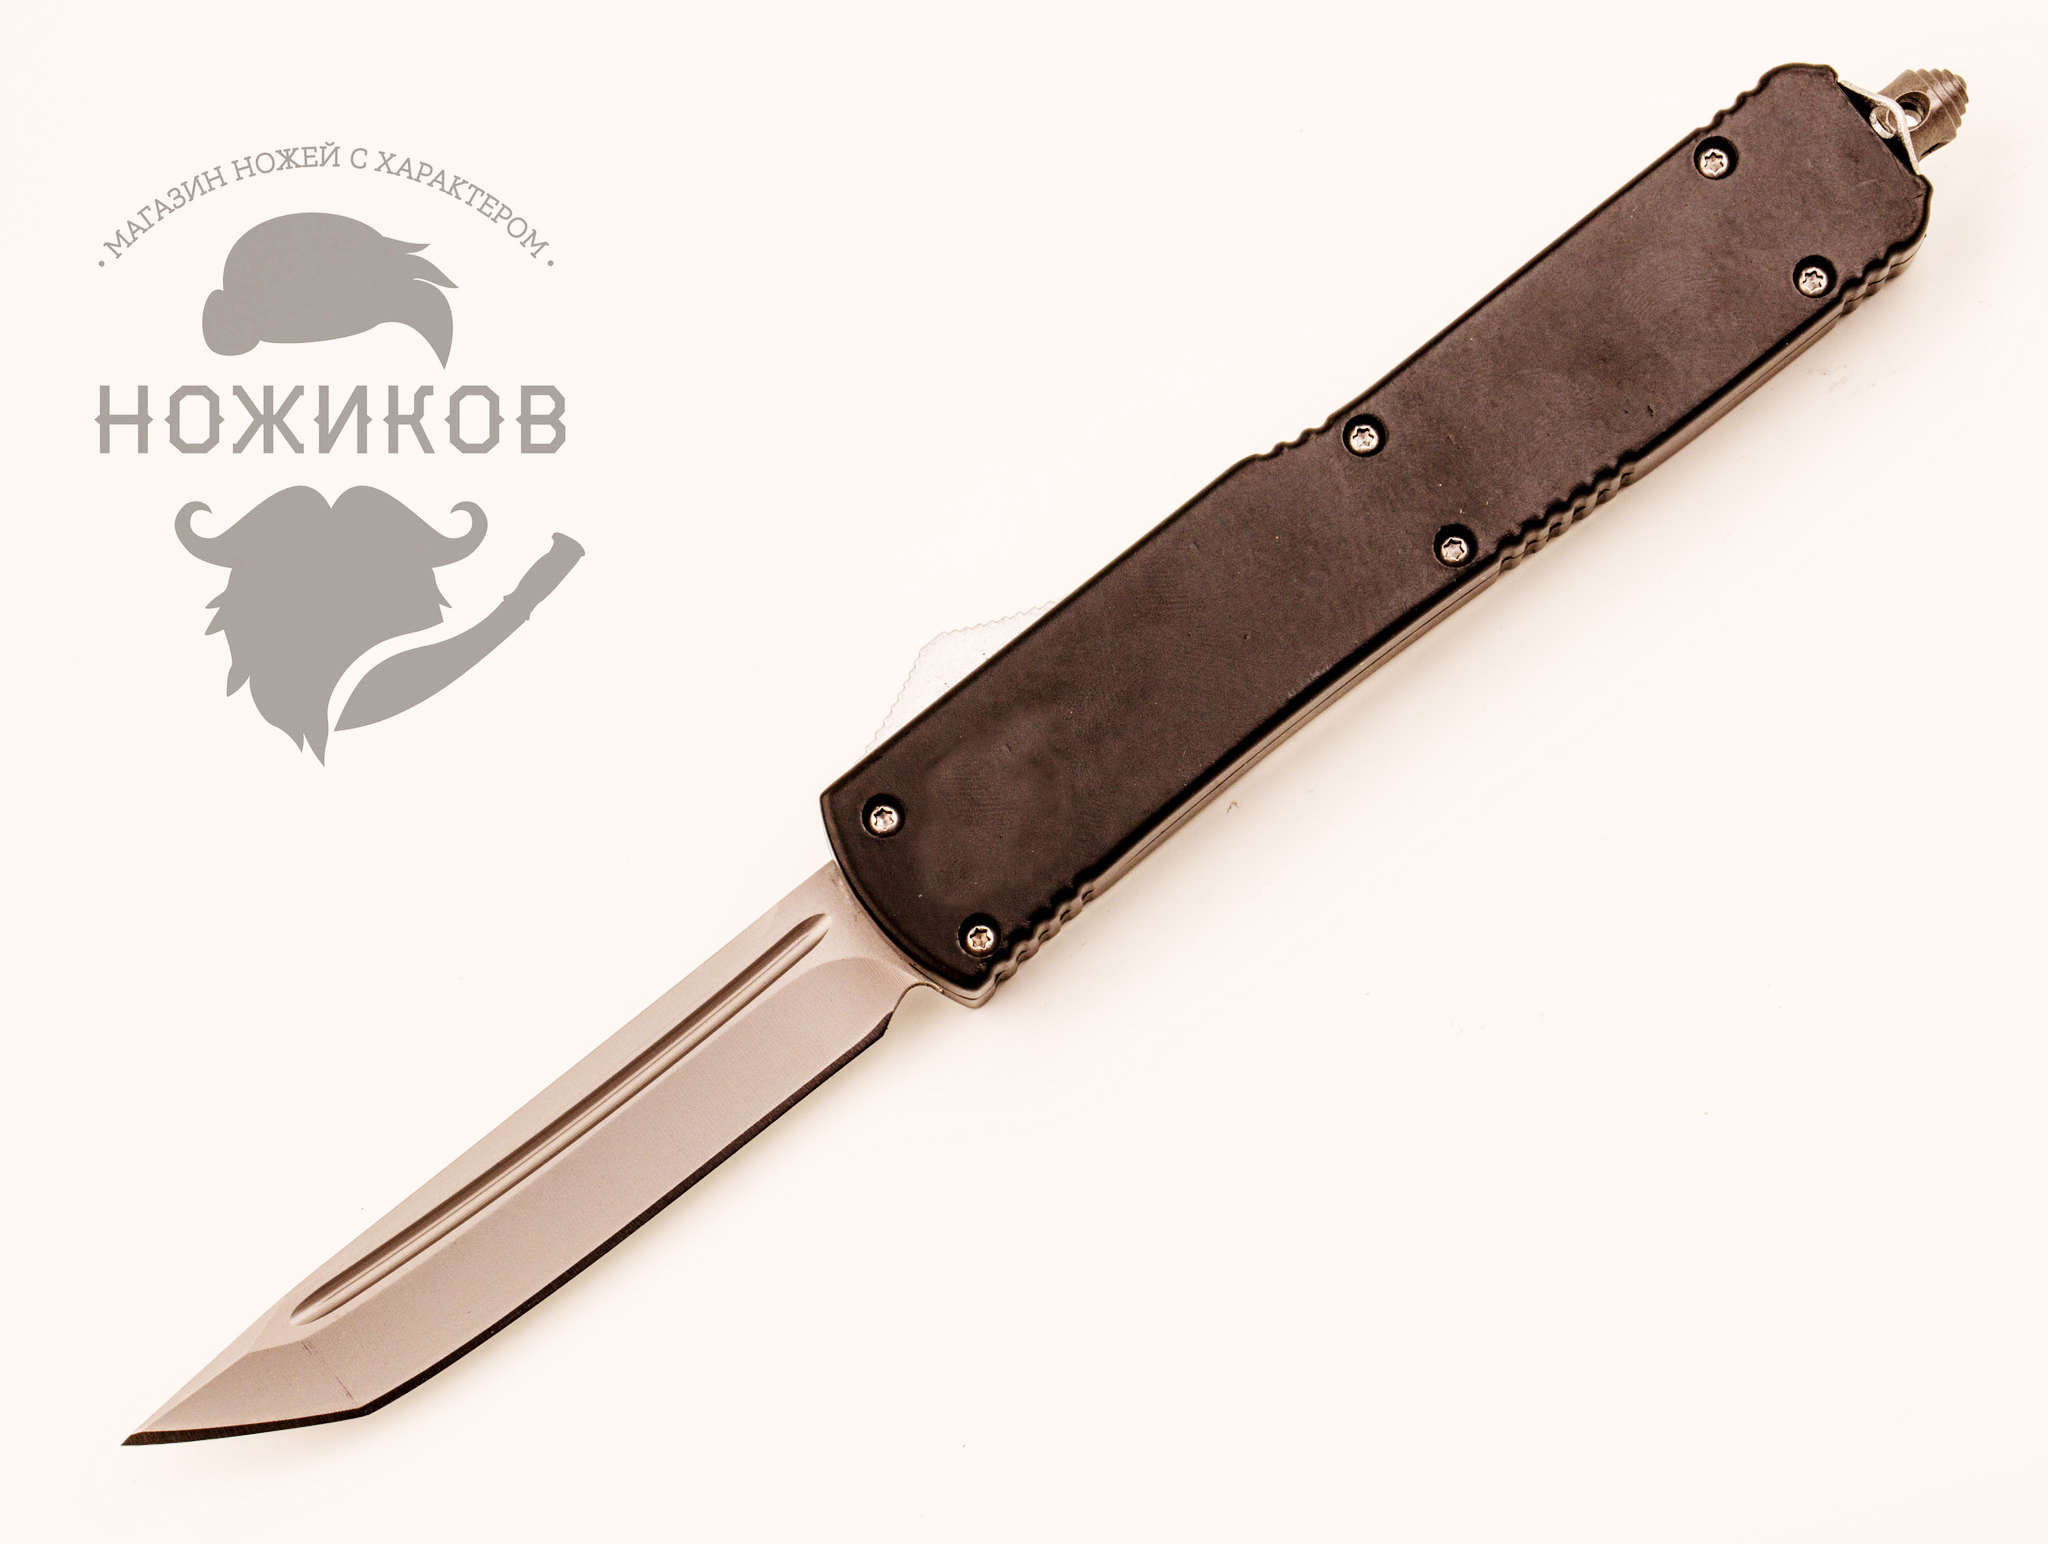 Нож Microtech UltraTech Replica нож охотничий ножемир таежник длина клинка 14 9 см